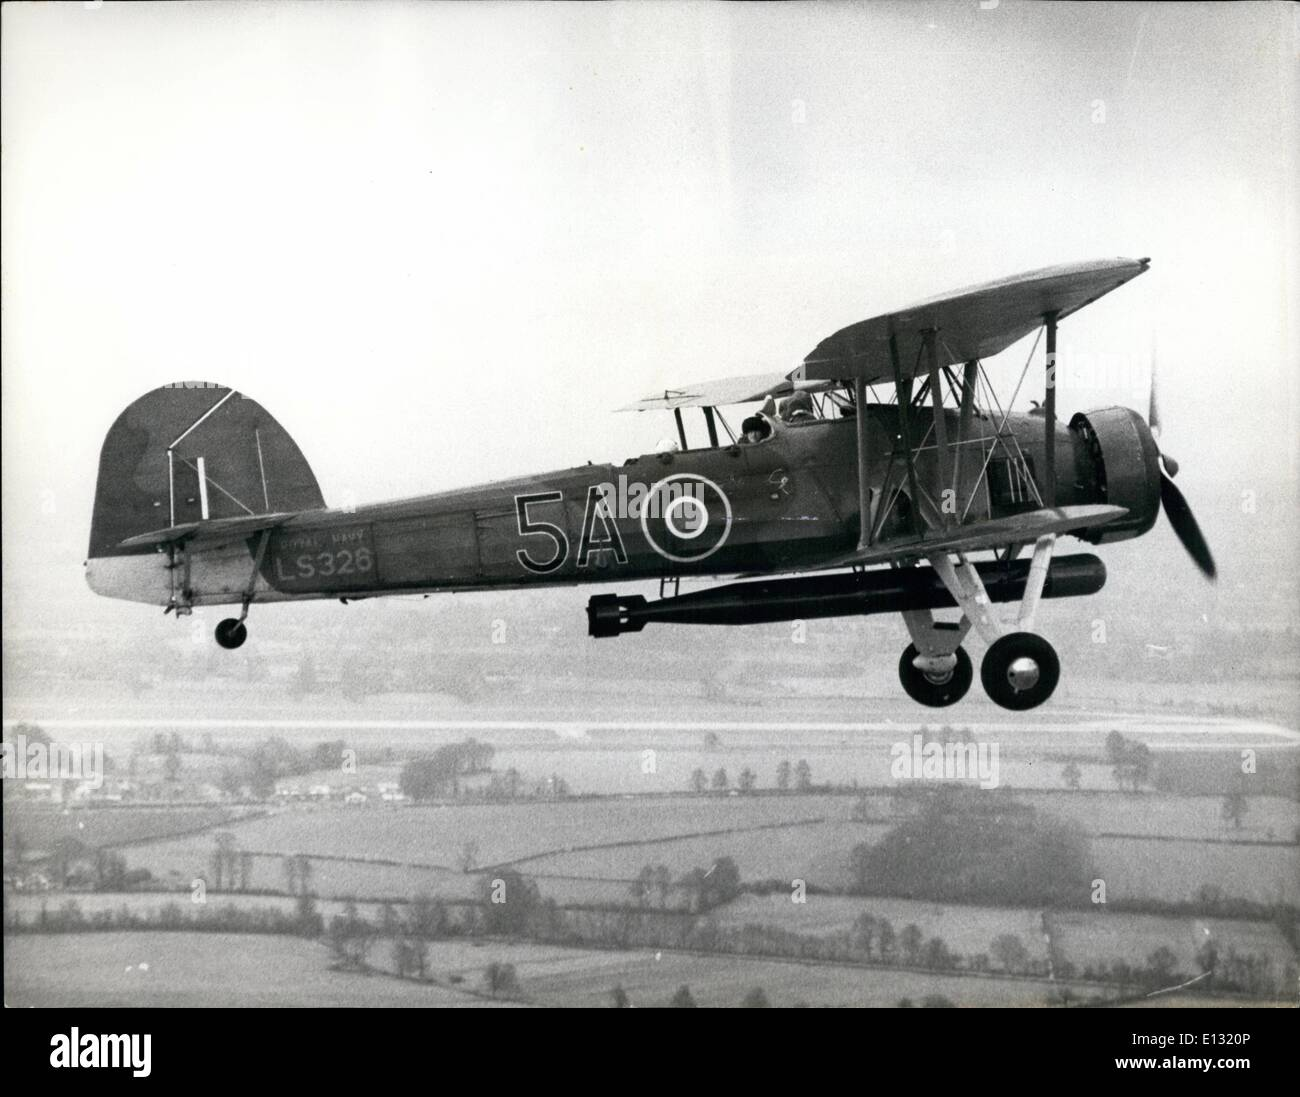 Feb. 26, 2012 - Swordfish flies again for the Navy.: The last airworthy survivor of the Fleet Air Arm's best-known wartime aircraft, the Swordfish, flying again at Yeovilton, Somerset, yesterday, with the aid of an engine from the Imperial War Museum. The Swordfish is to fly at many future air displays. The 1943-built torpedo bomber was grounded last July after its Pegasus engine had worn out. - Stock Image